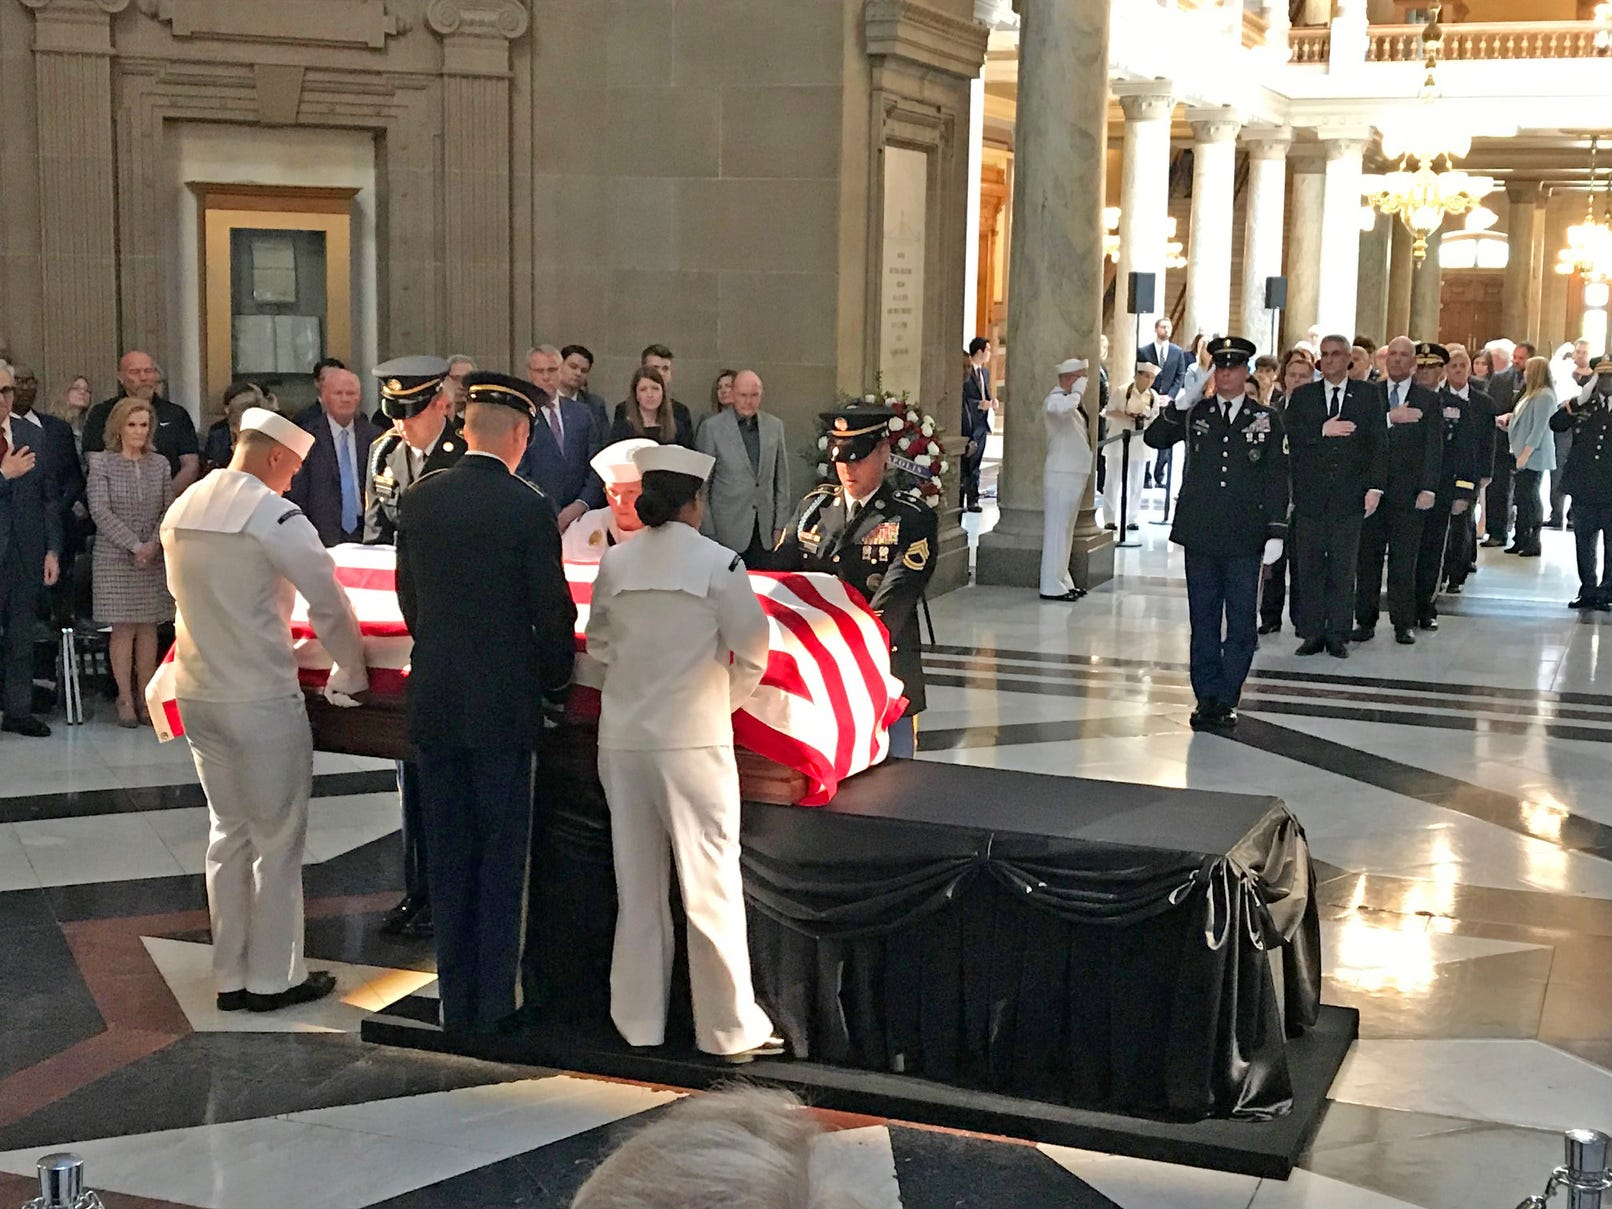 A military honor guard places the casket of former Indiana Senator Richard Lugar on the catafalque to lie in state in the rotunda of the State Capitol in Indianapolis, Tuesday, May 14, 2019.